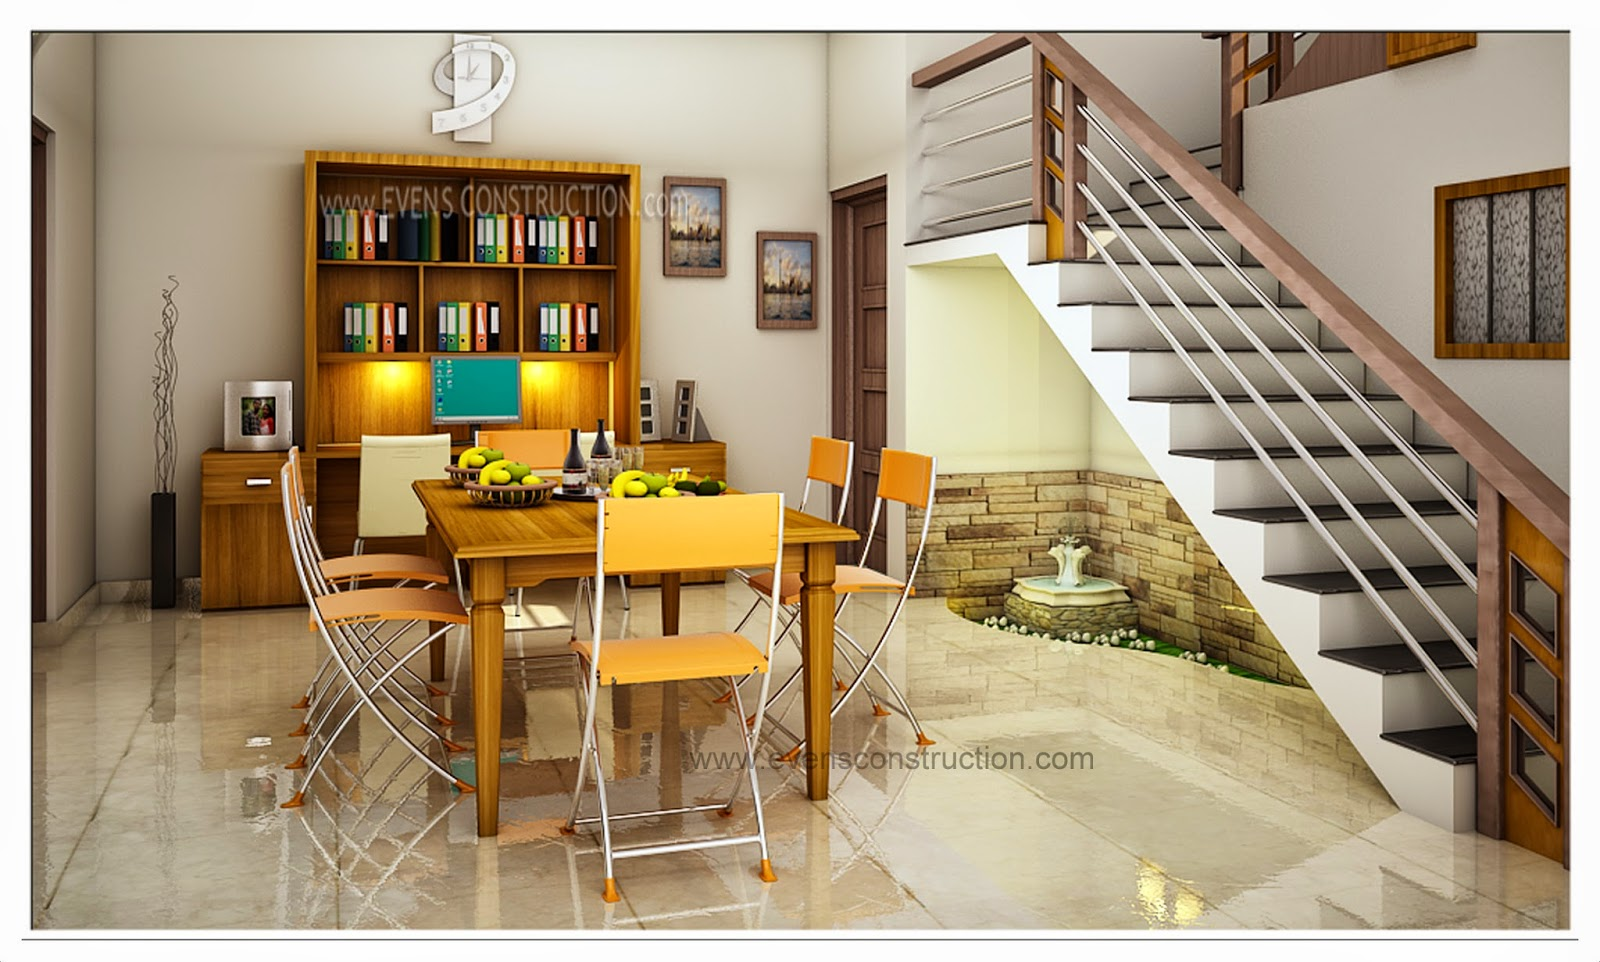 Evens construction pvt ltd beautiful interior design for for Kerala home interior designs photos